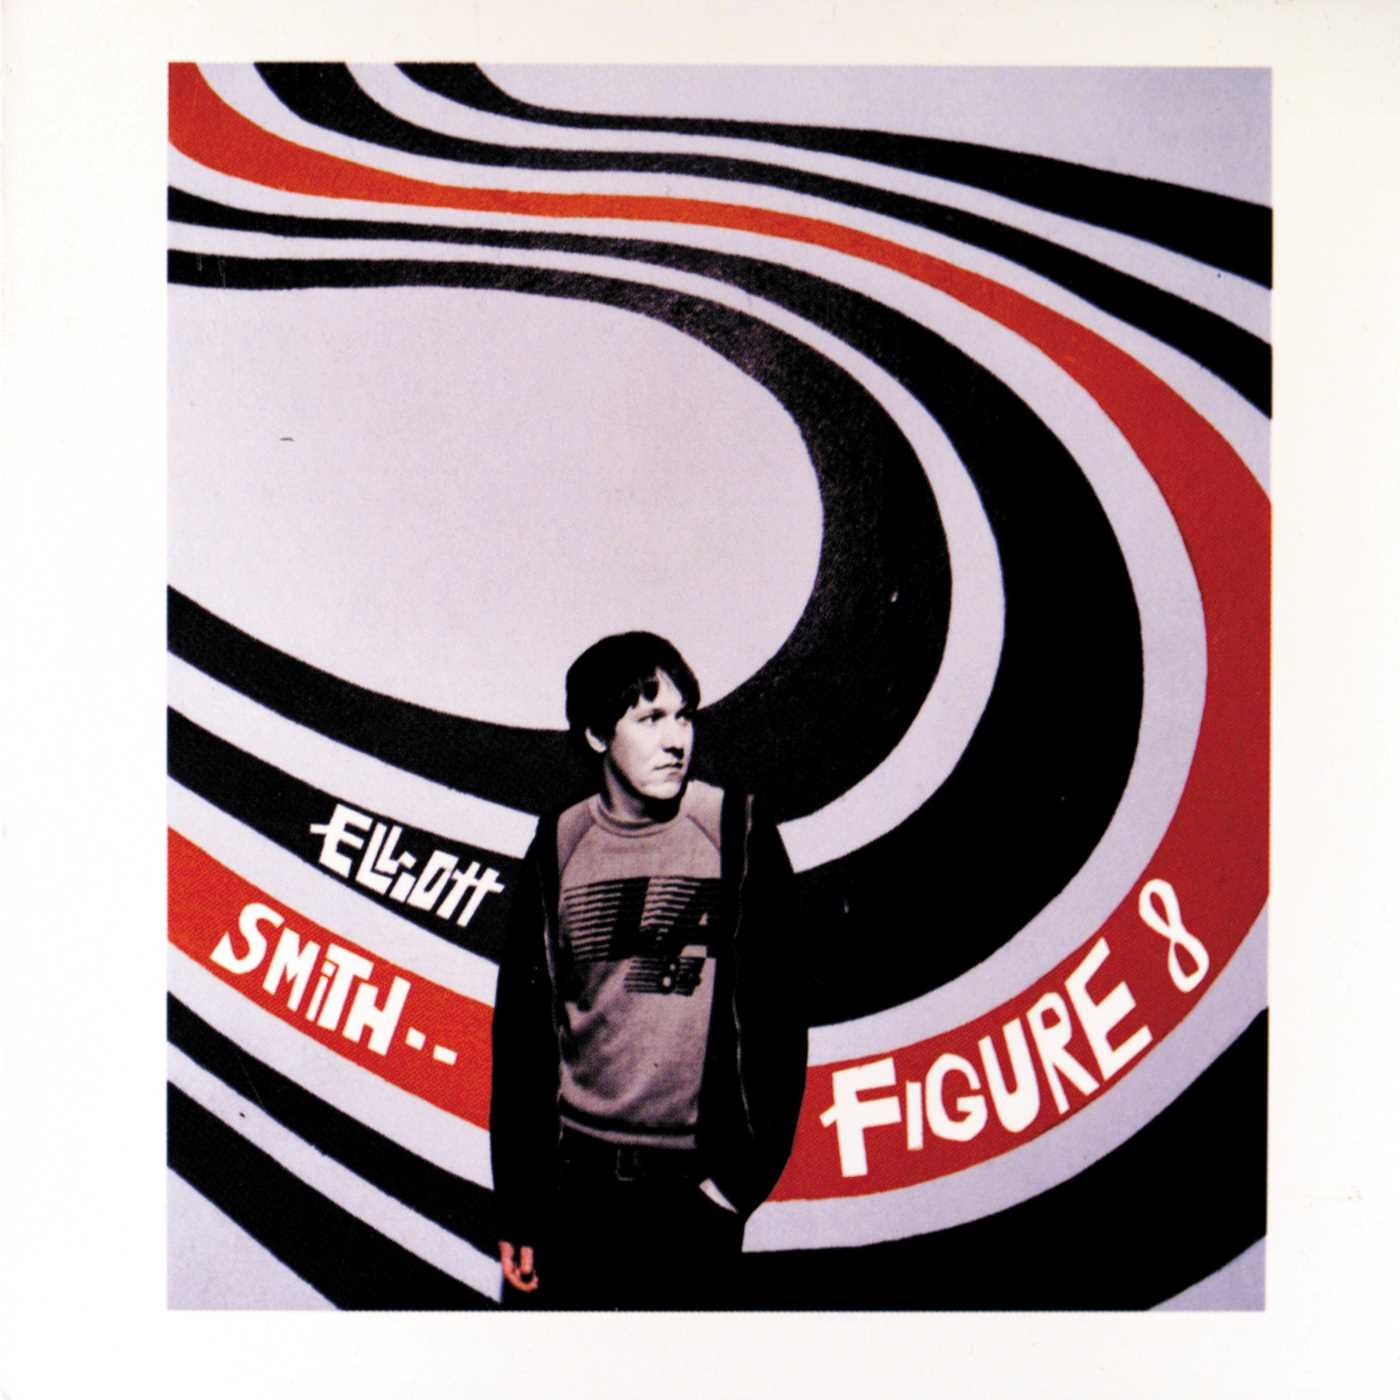 Elliott Smith Figure 8 deluxe digital edition